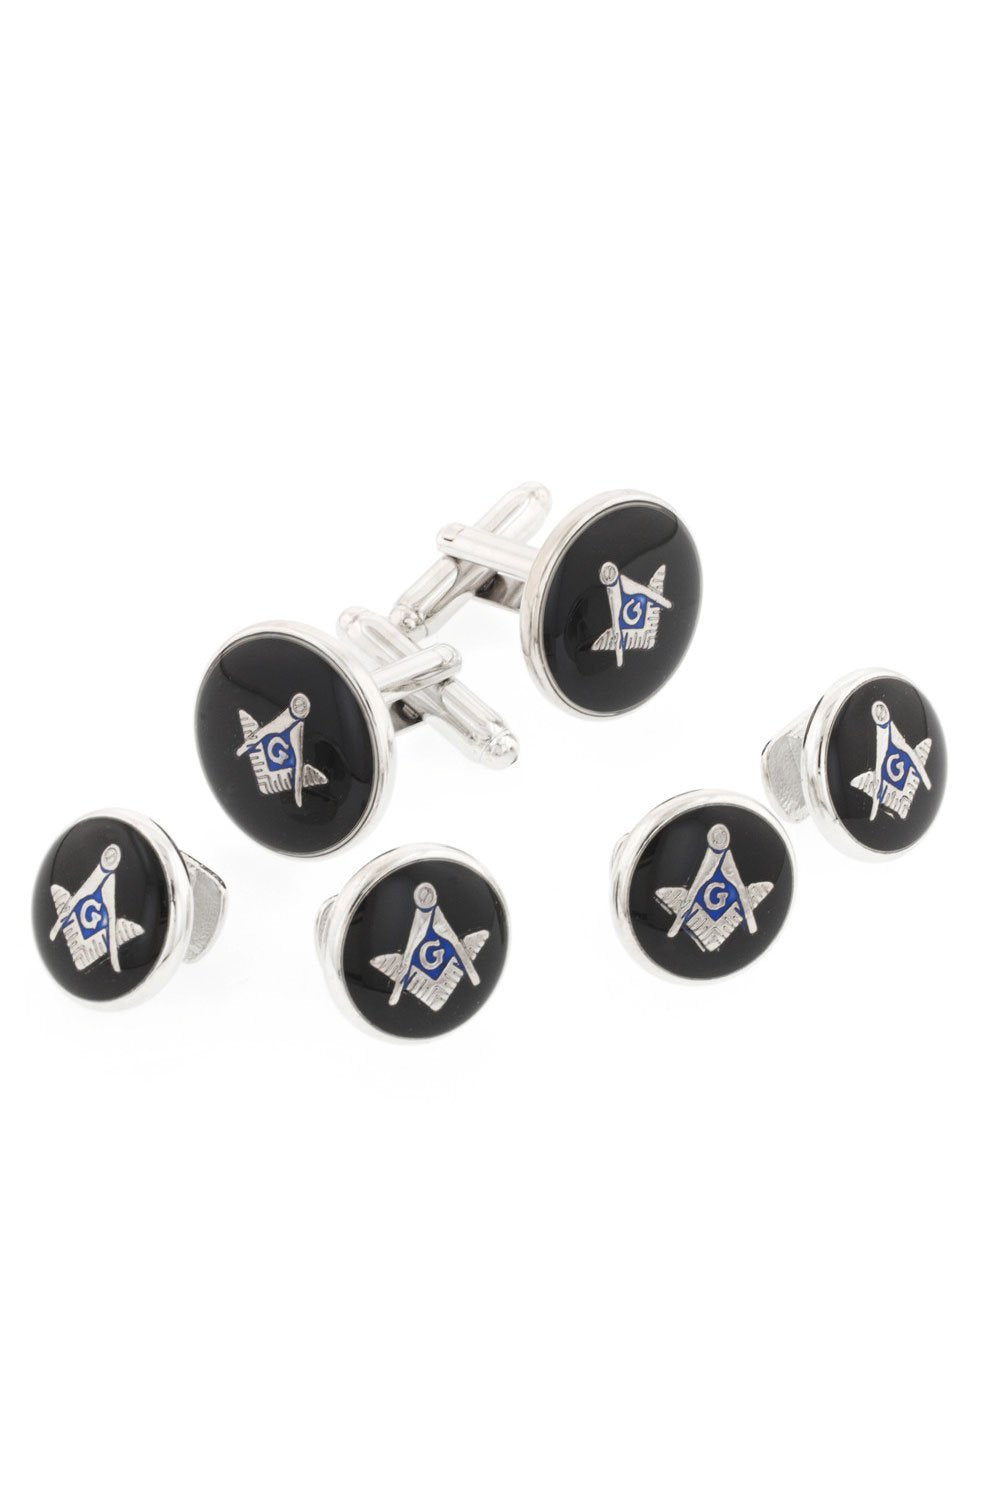 Masonic Black Enamel Silver Studs and Cufflinks Set